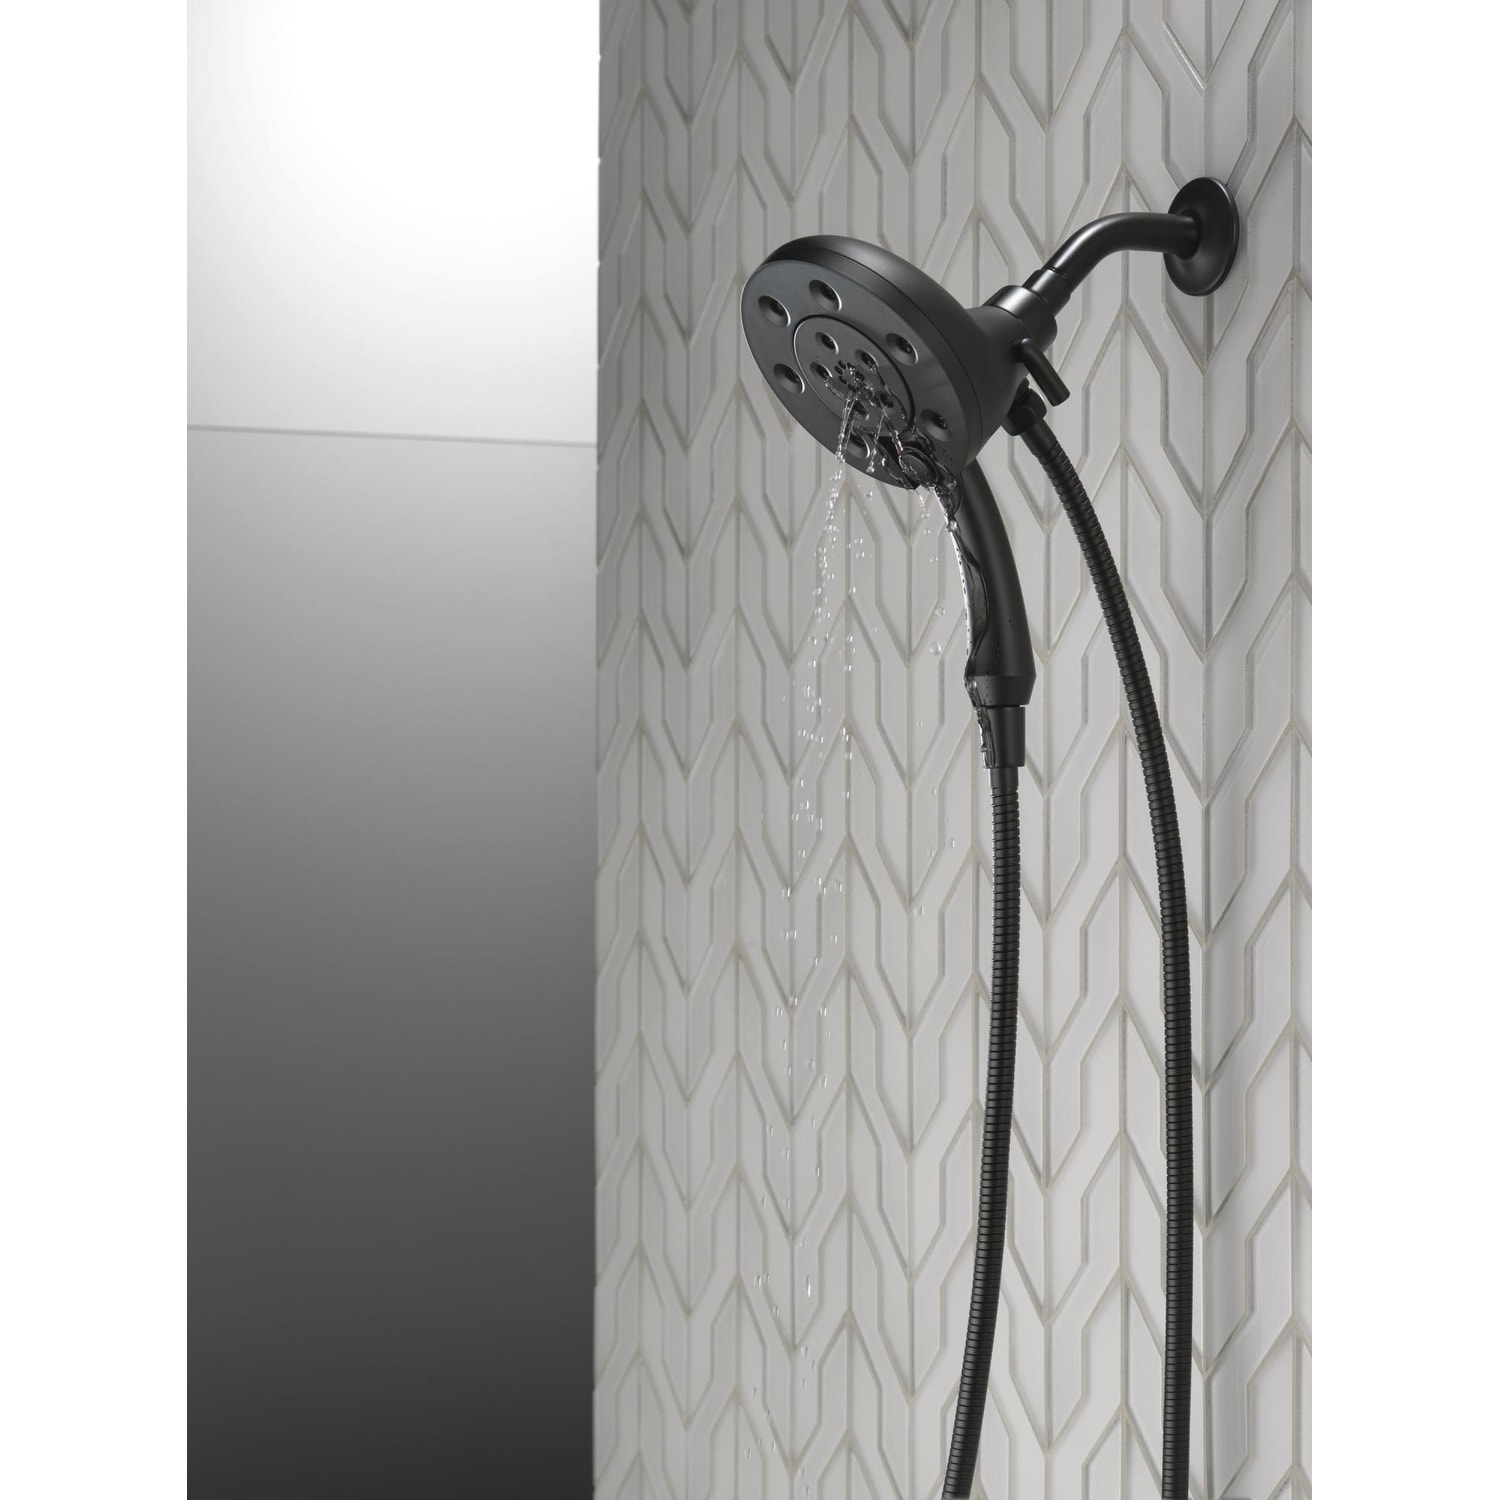 Delta 58472 2 5 Gpm In2ition 2 In 1 Multi Function Shower Head And Hand Shower With H2okinetic And Magnetic Docking Technology